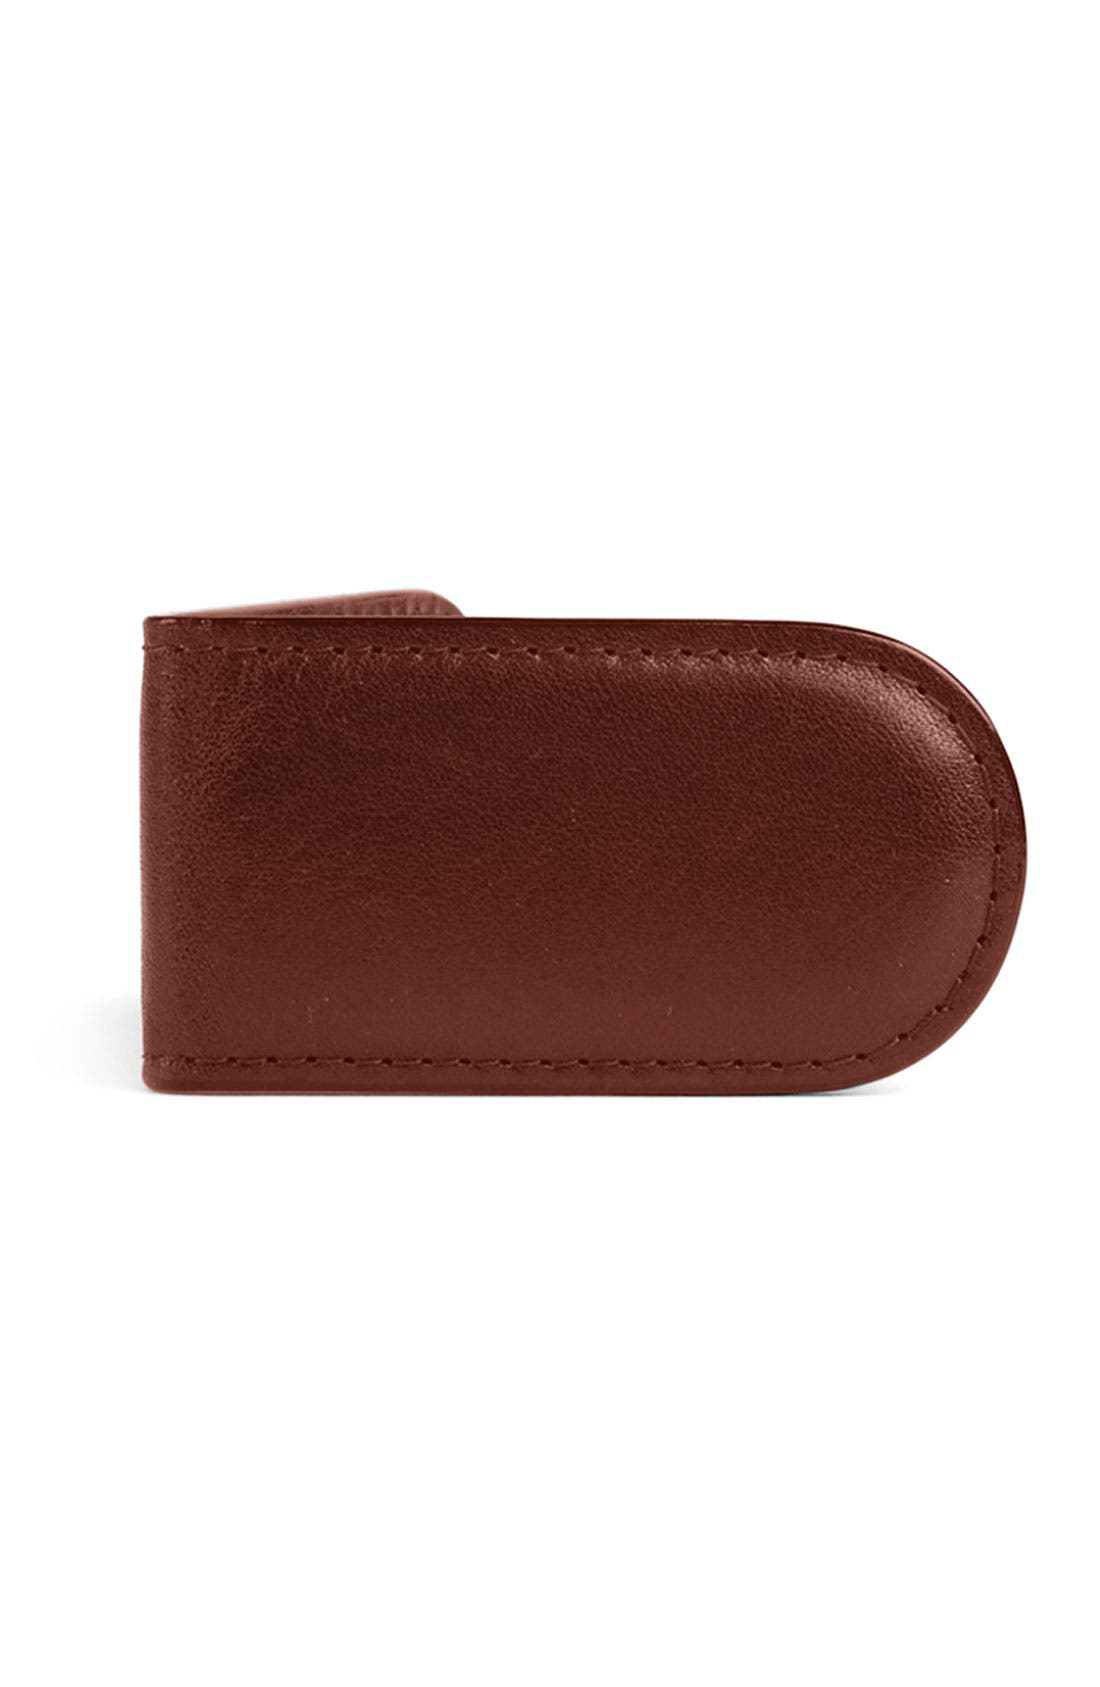 Bosca Leather Money Clip